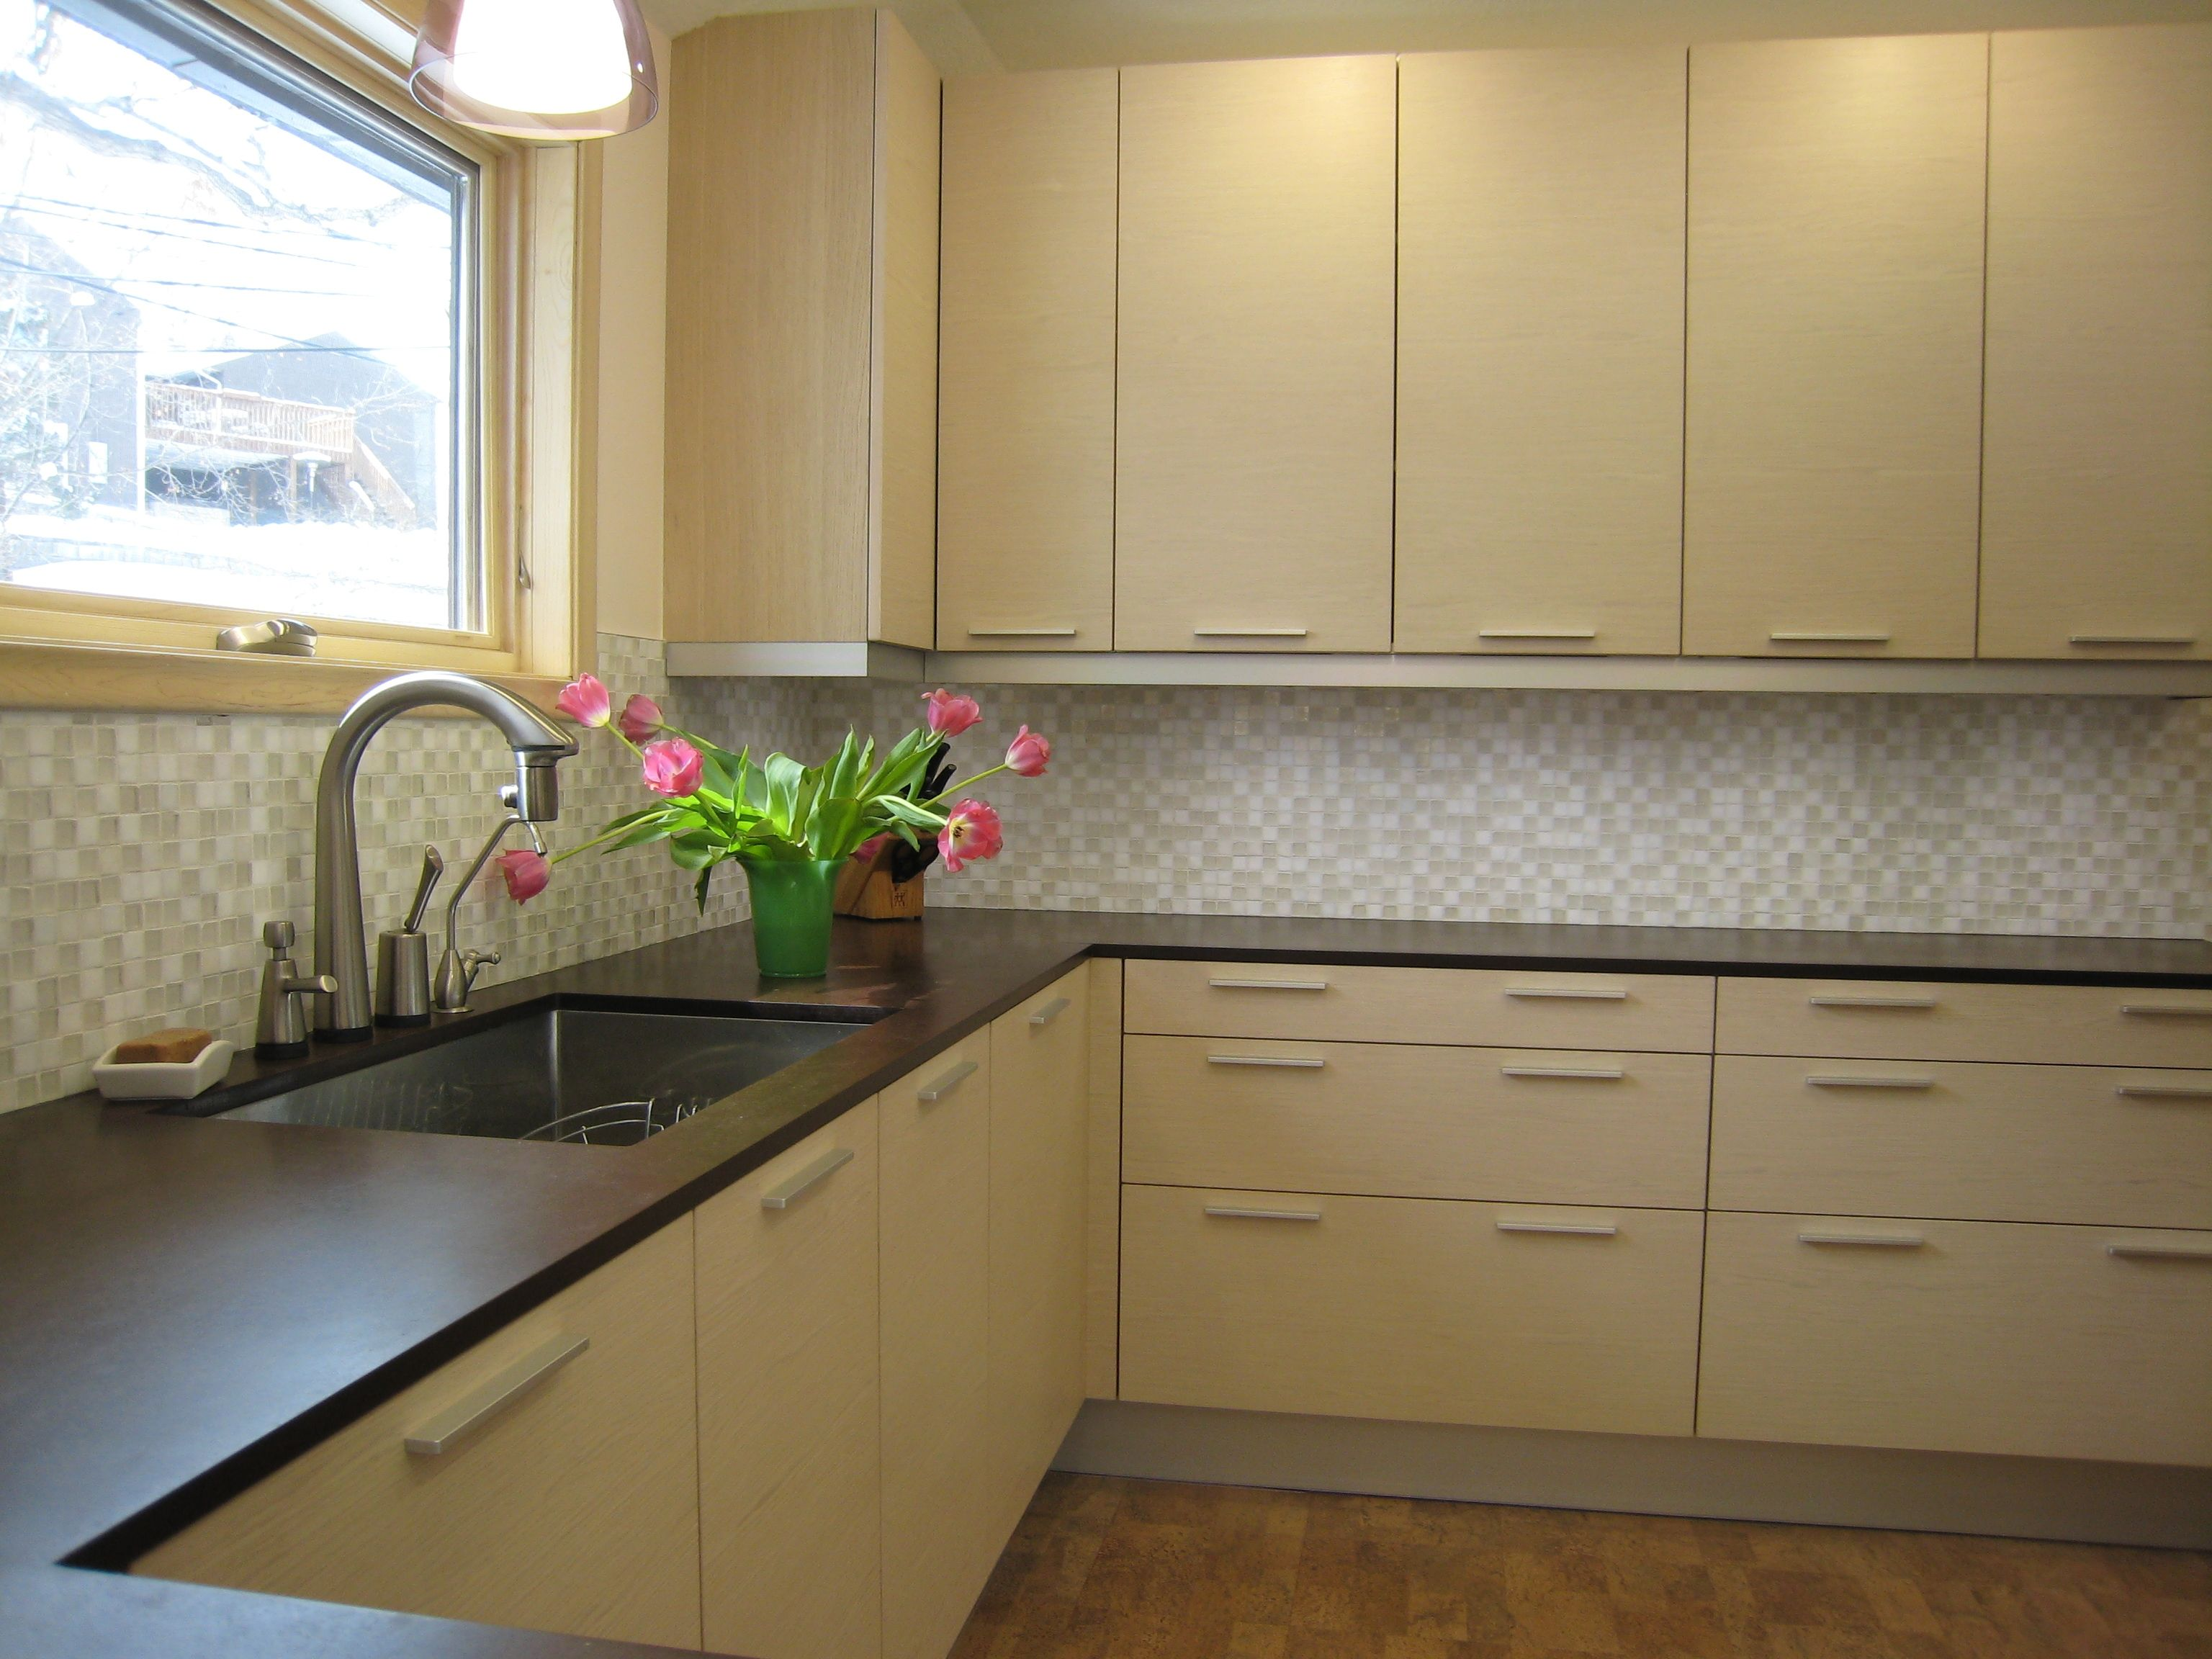 Paperstone Countertops With Light Wood Cabinets